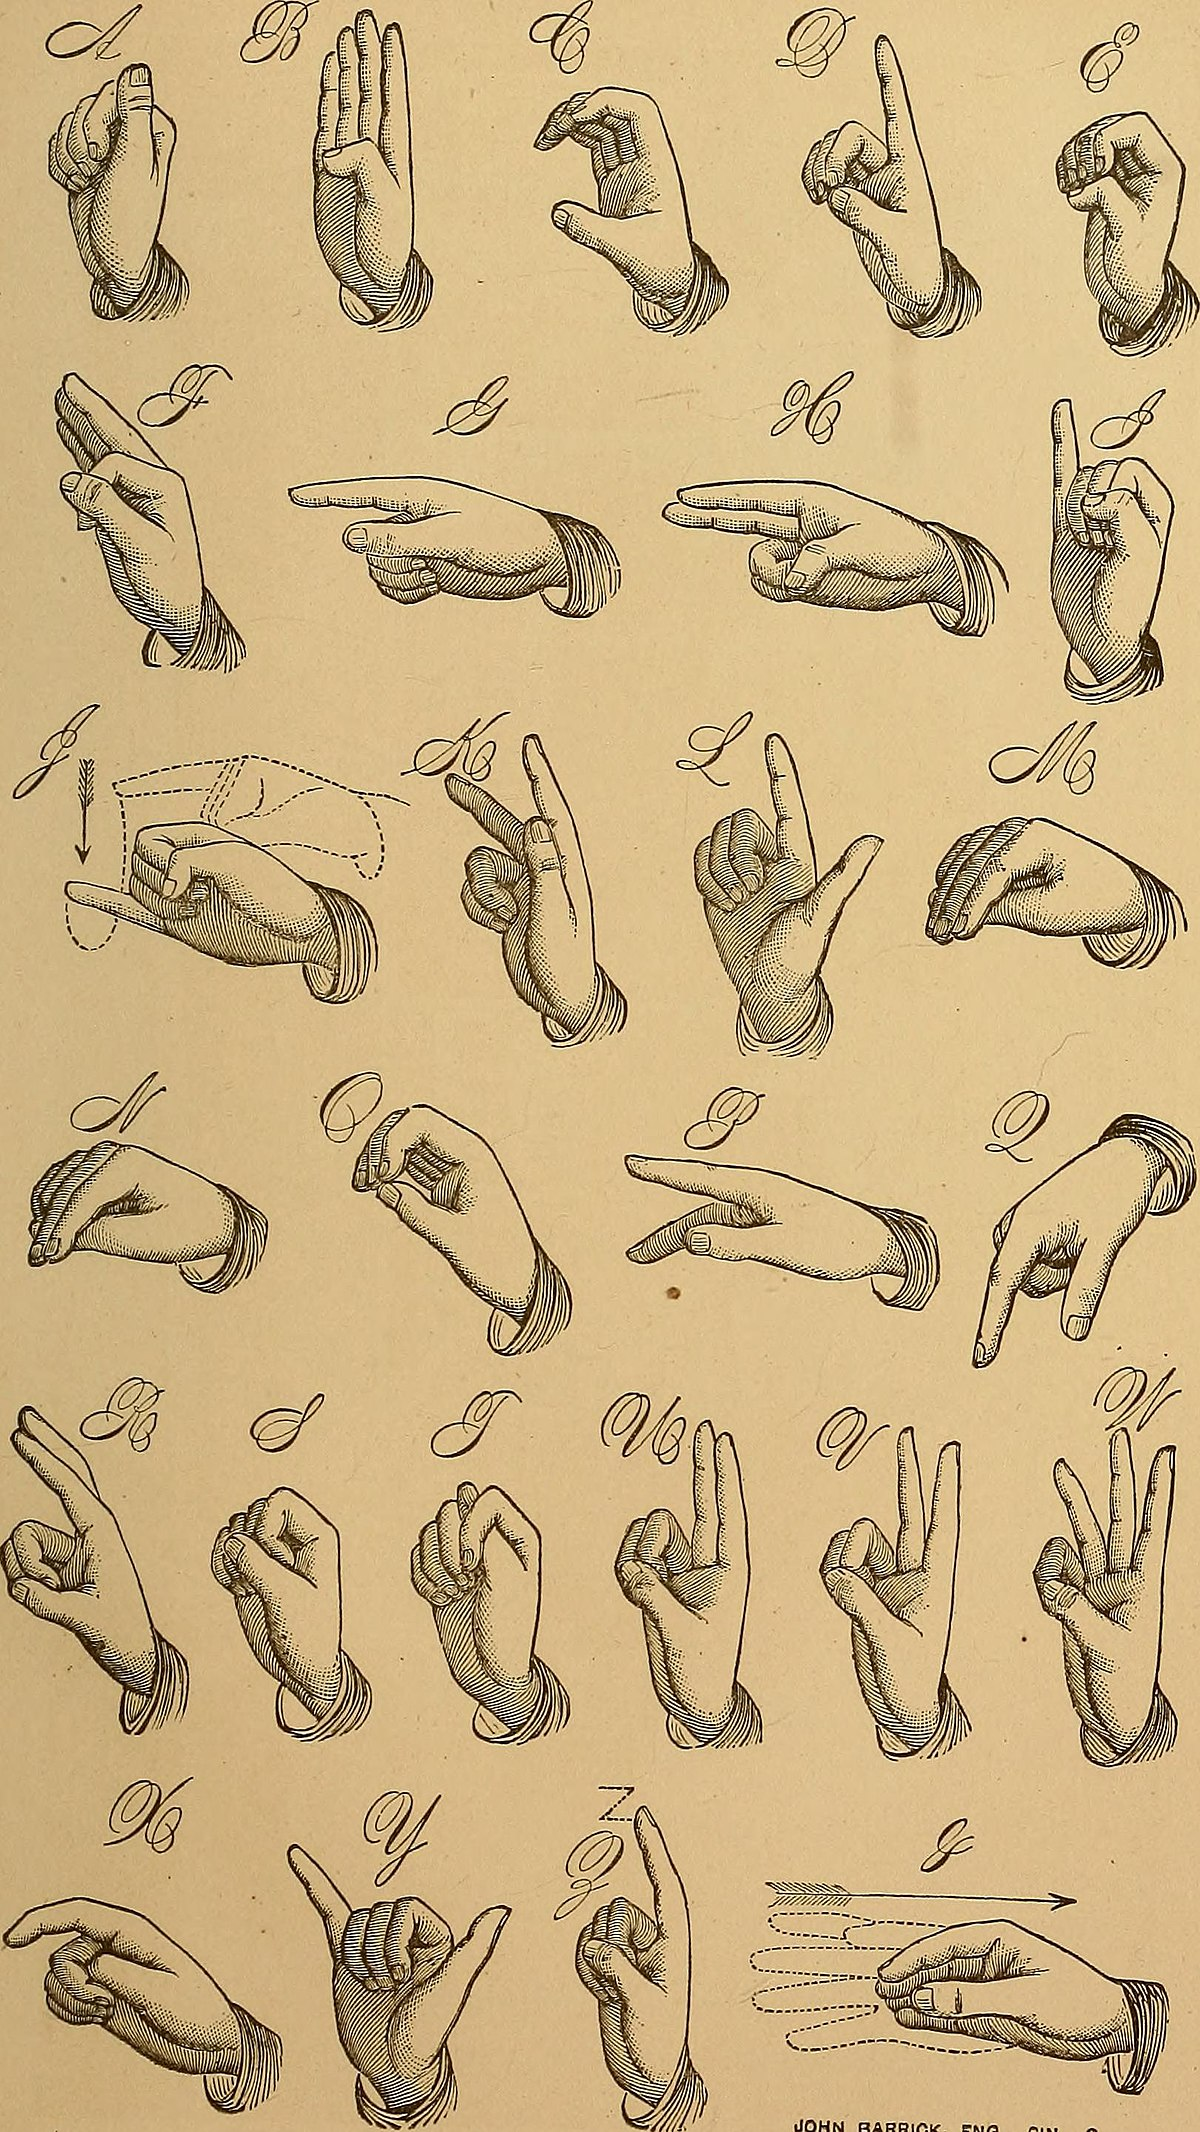 manual alphabet for the deaf